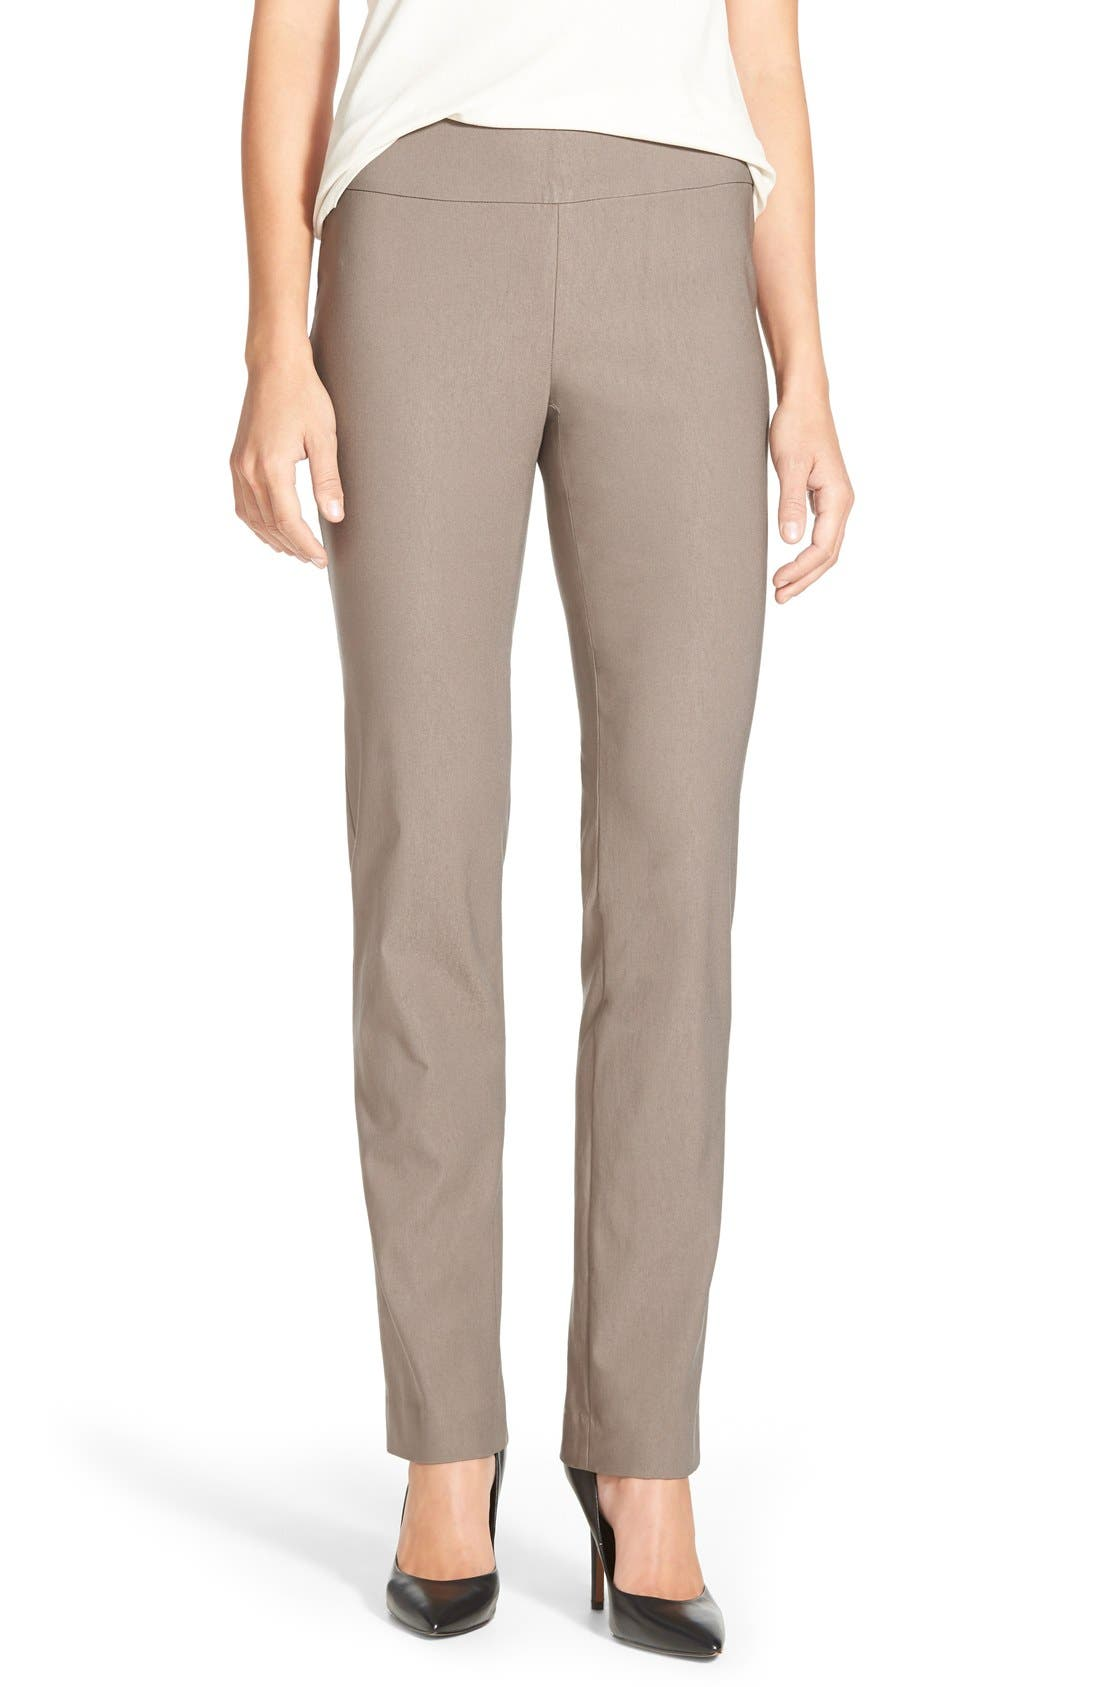 Main Image - NIC+ZOE 'The Wonder Stretch' Straight Leg Pants (Regular & Petite)